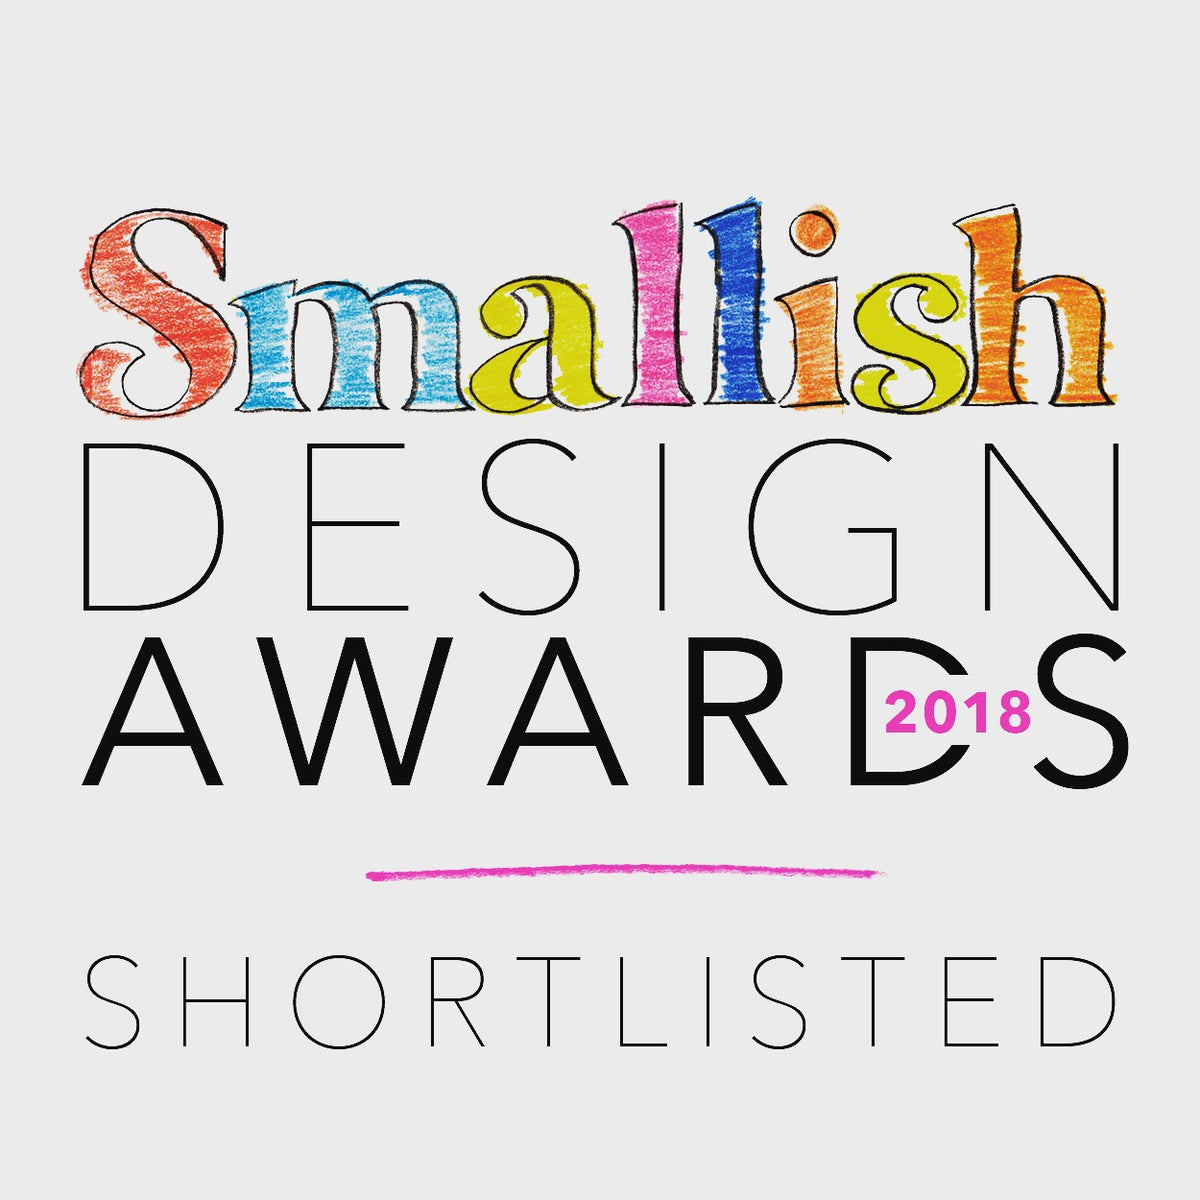 We've been shortlisted for another award!!